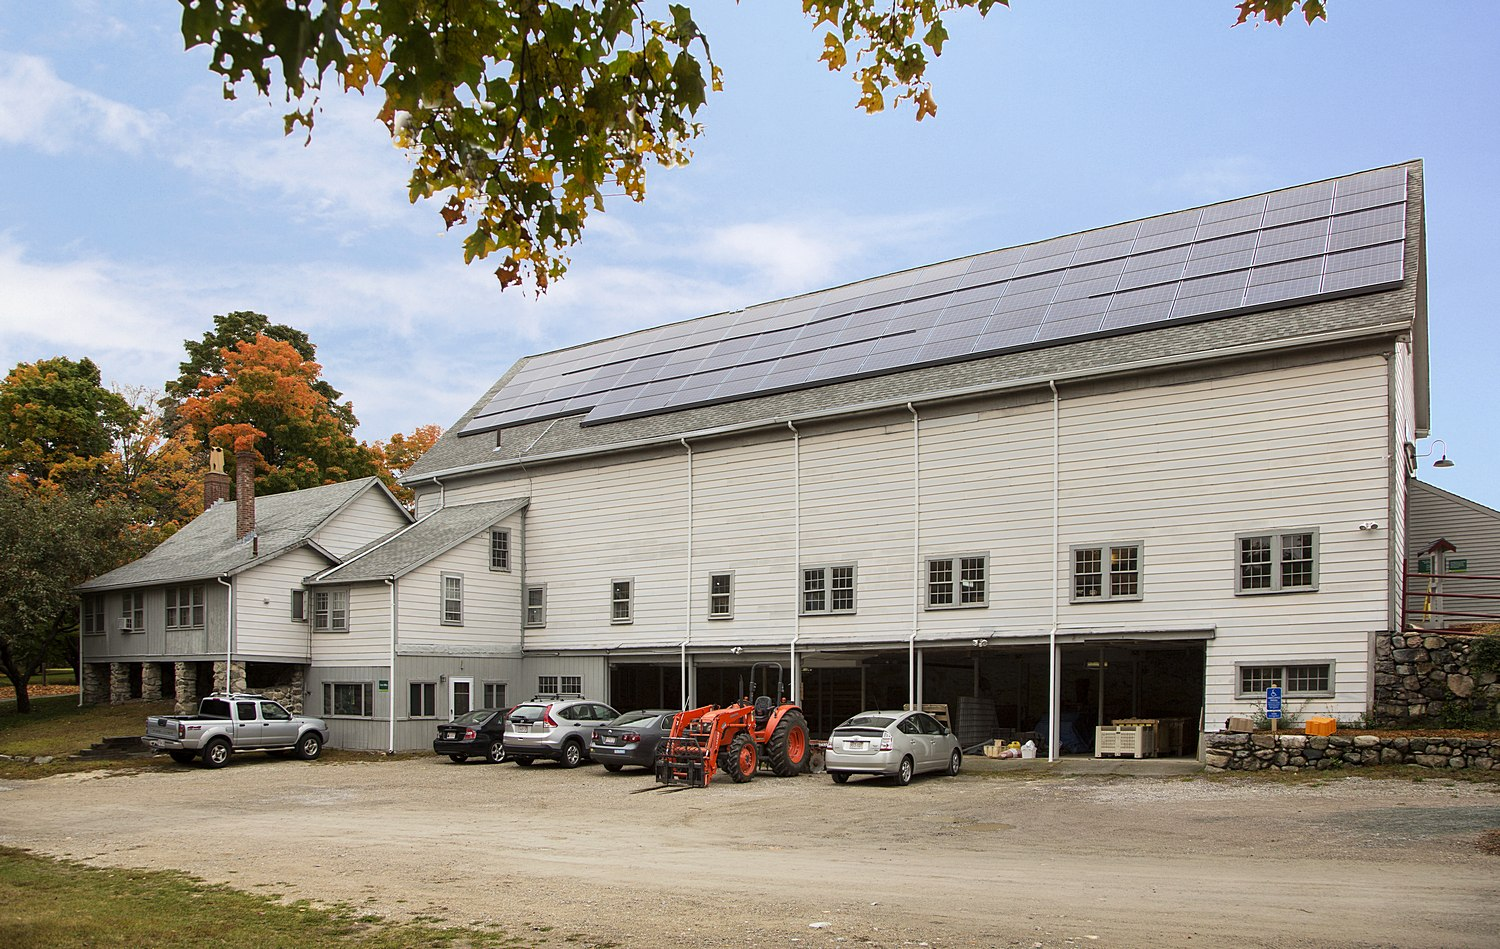 Net positive barn with rooftop solar panels